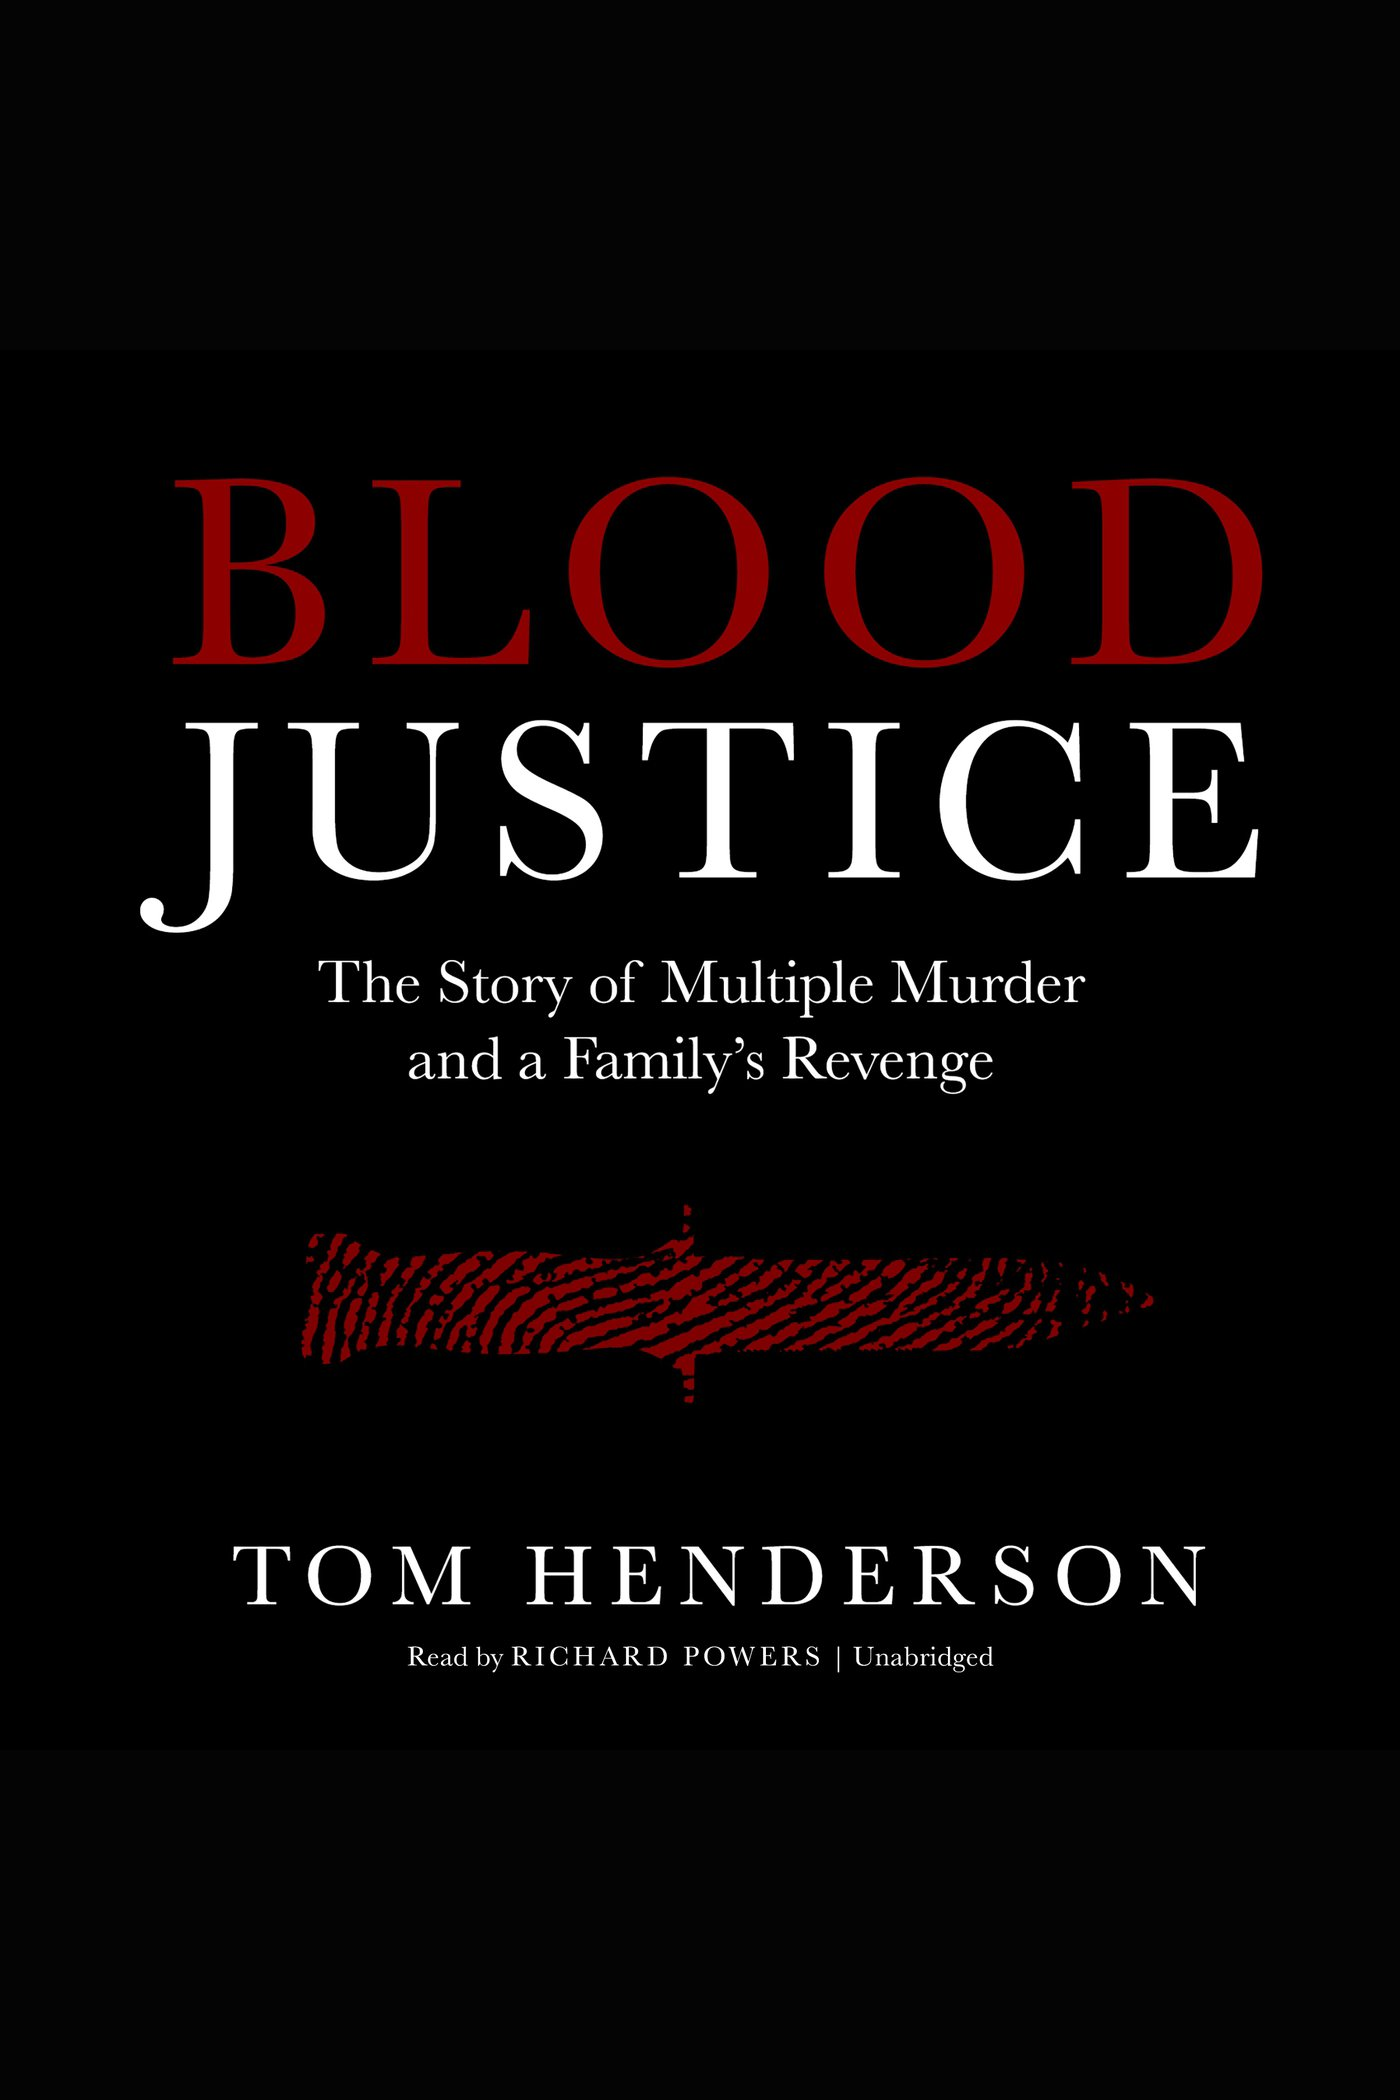 Blood Justice The Story of Multiple Murder and a Family's Revenge cover image